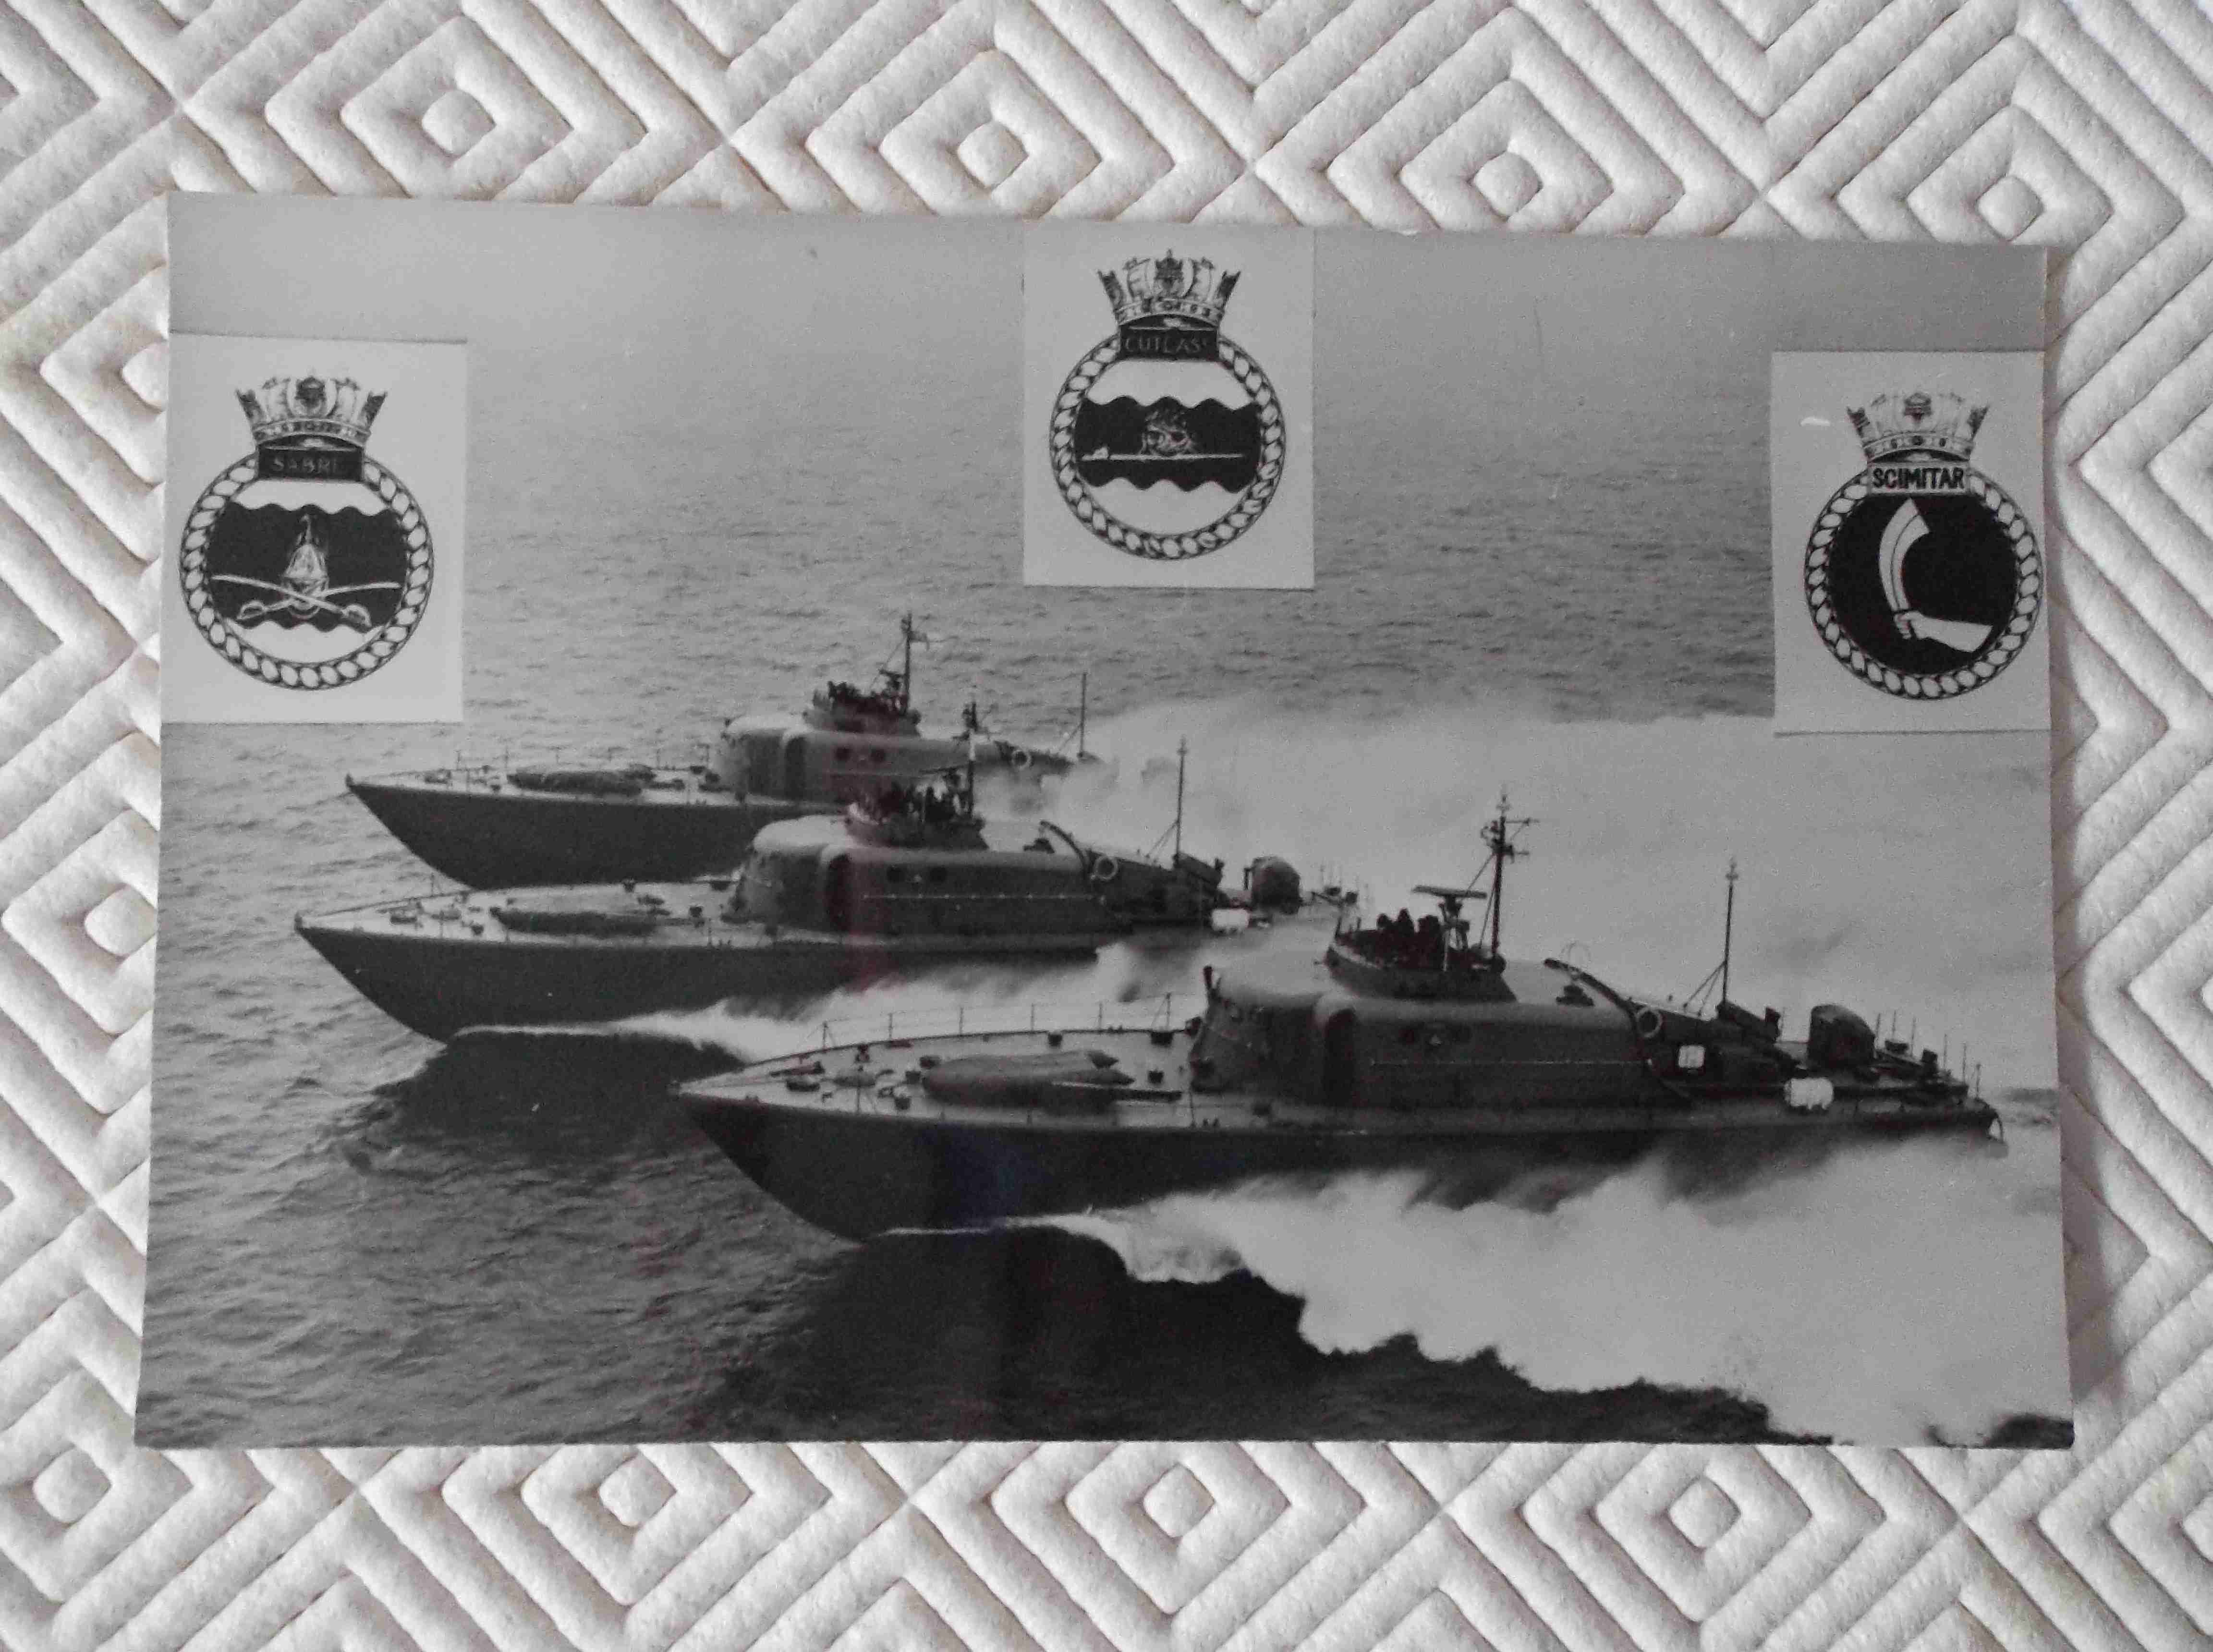 POSTCARD SIZE PHOTOGRAPH SHOWING 3 ROYAL NAVAL LAUNCHES